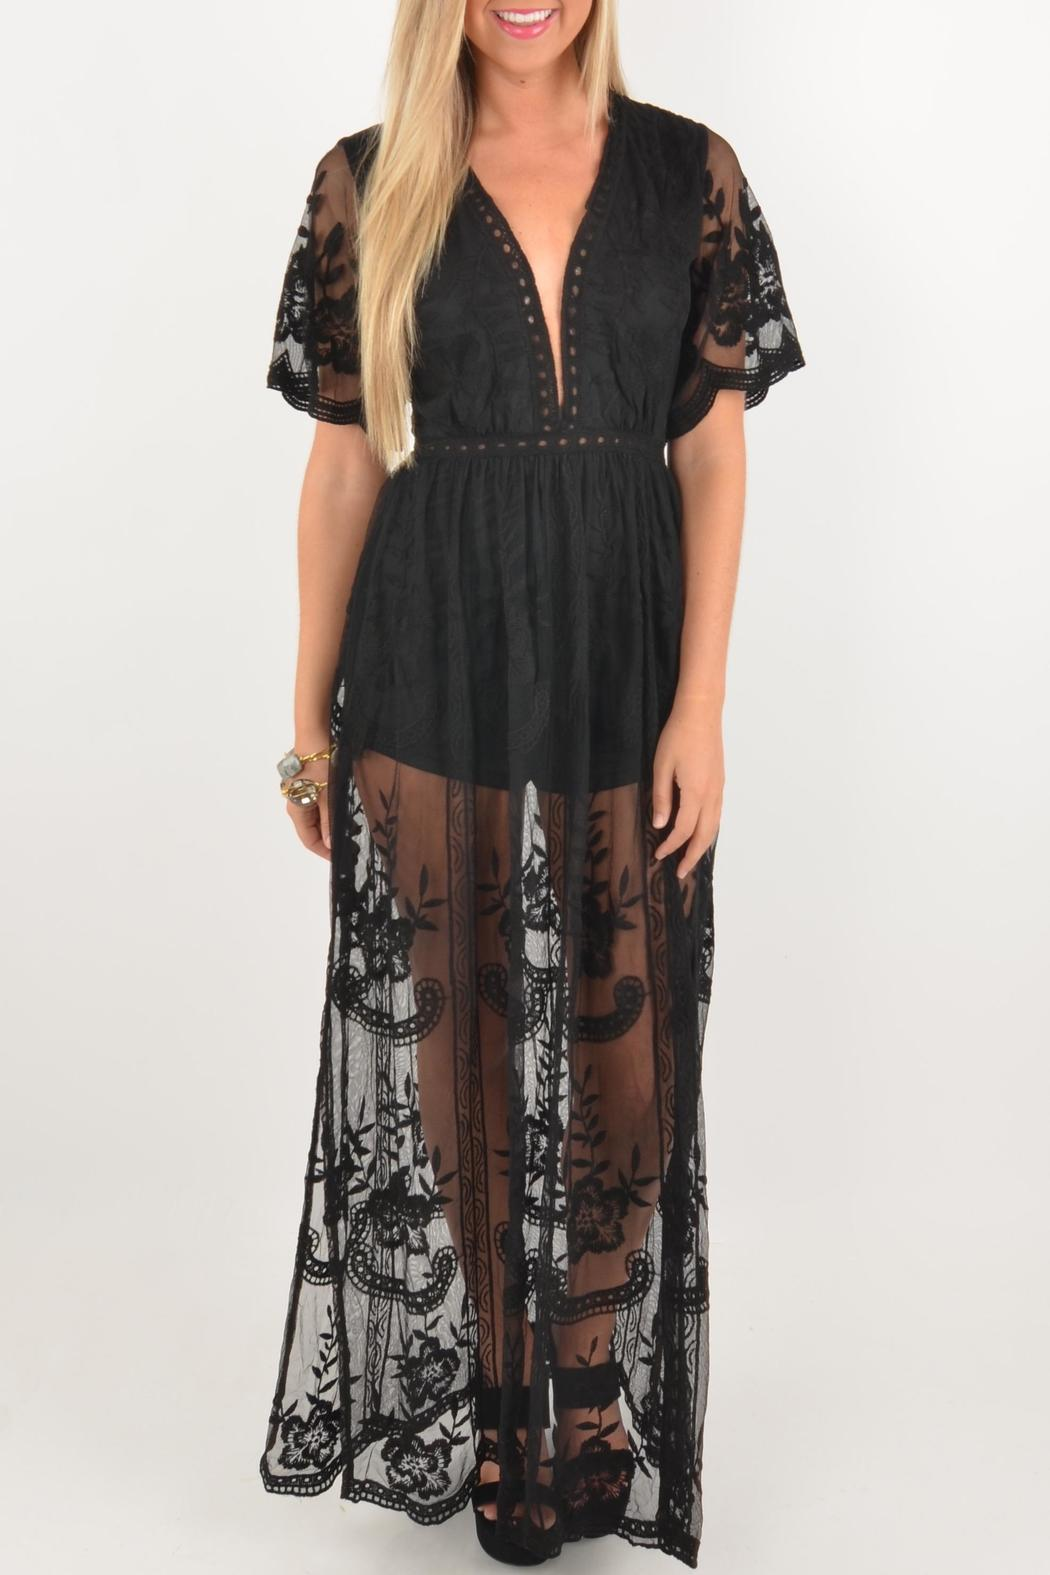 059fed7b8696 Honey Punch Black Lace Romper from Mississippi by Deep South Pout ...